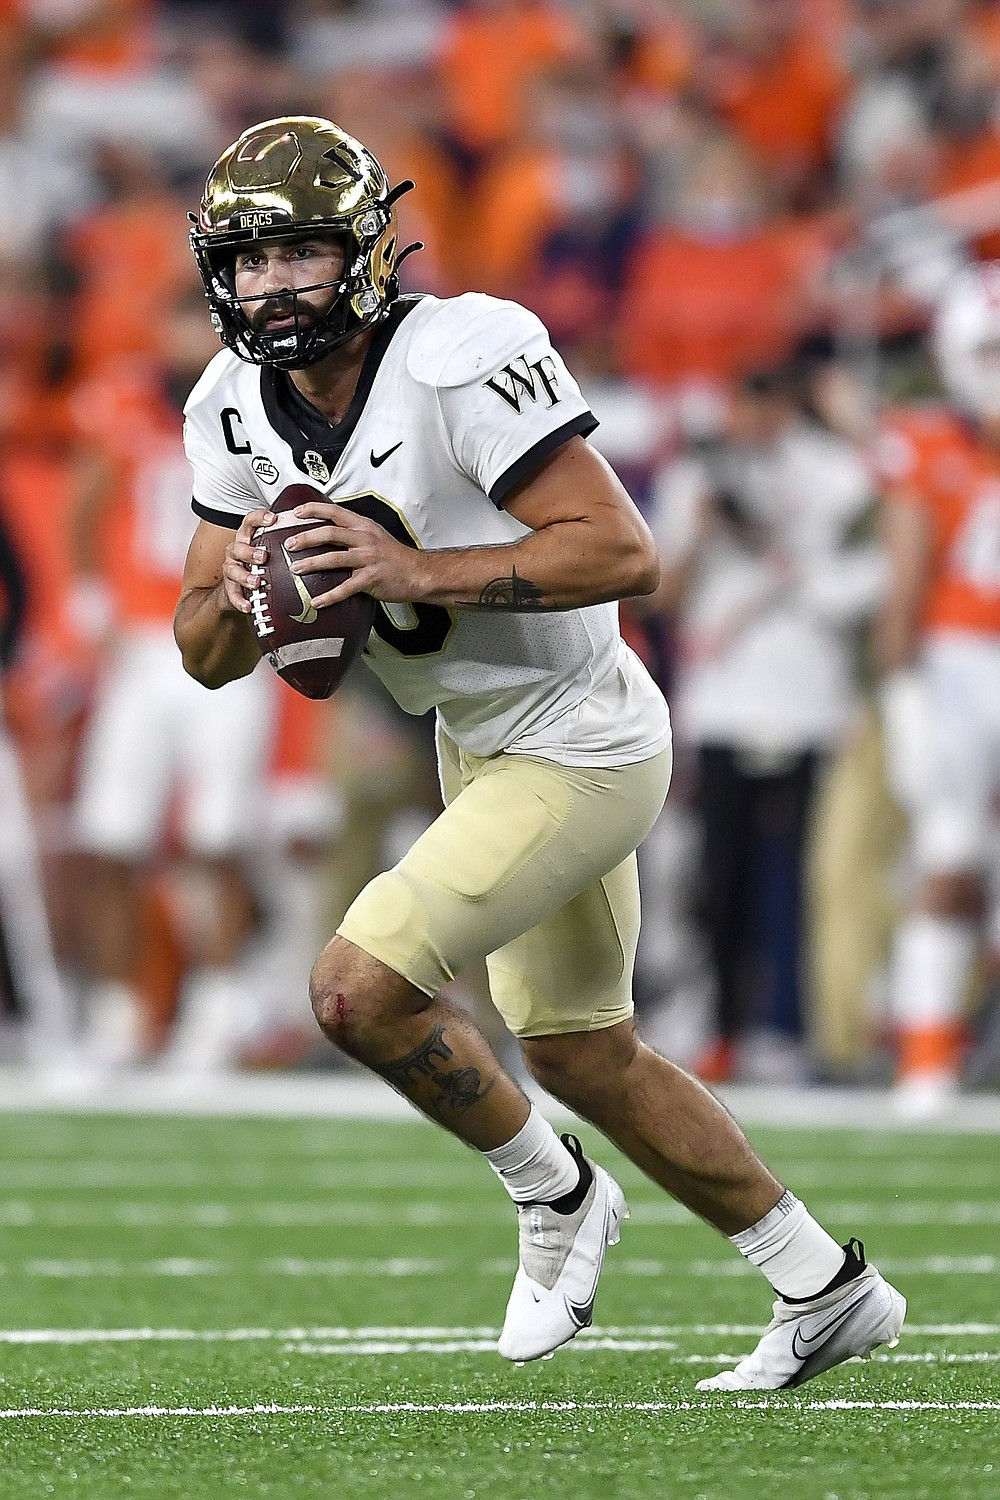 Sophomore quarterback Sam Hartman has helped lead Wake Forest (6-0) to a No. 16 AP Top 25 ranking and a 4-0 start in the Atlantic Coast Conference. (AP/Adrian Kraus)